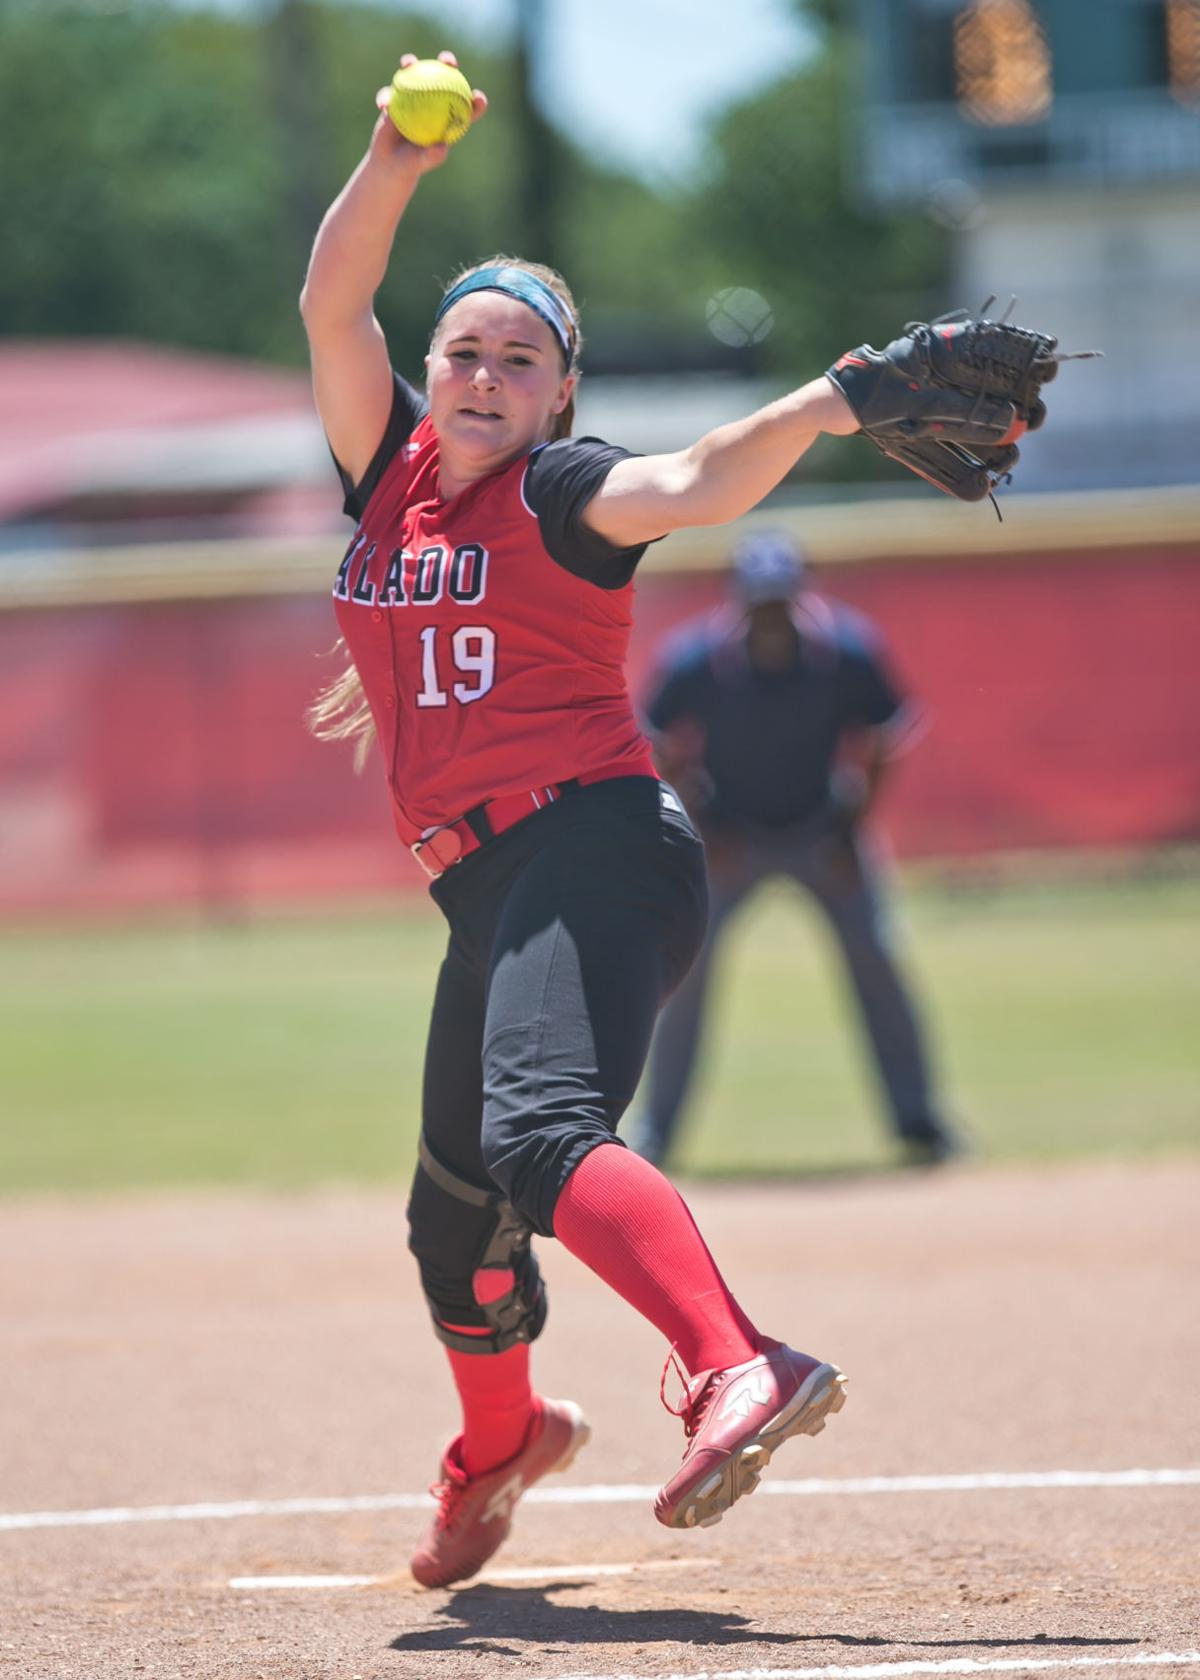 Hillsboro at Salado Softball Games2/3 Area Round